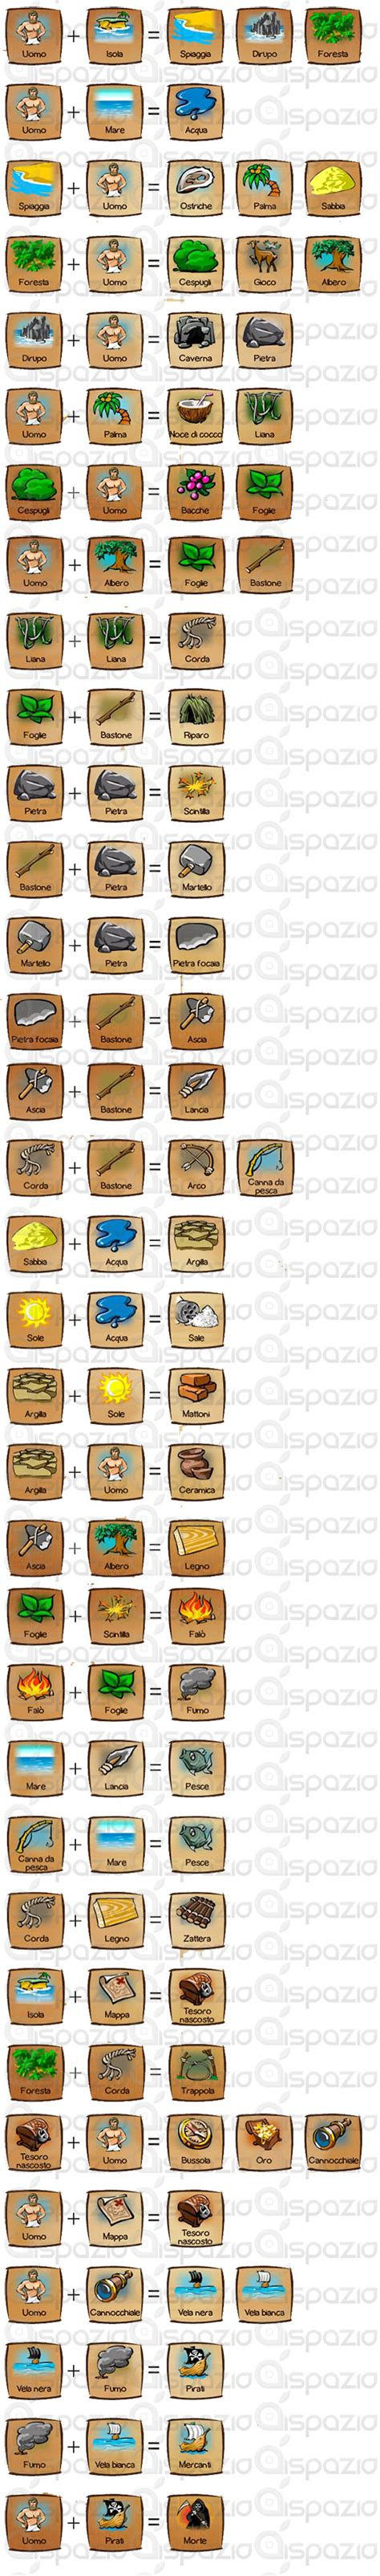 doodle hints doodle god walkthrough completiamo al 100 sopravvissuto